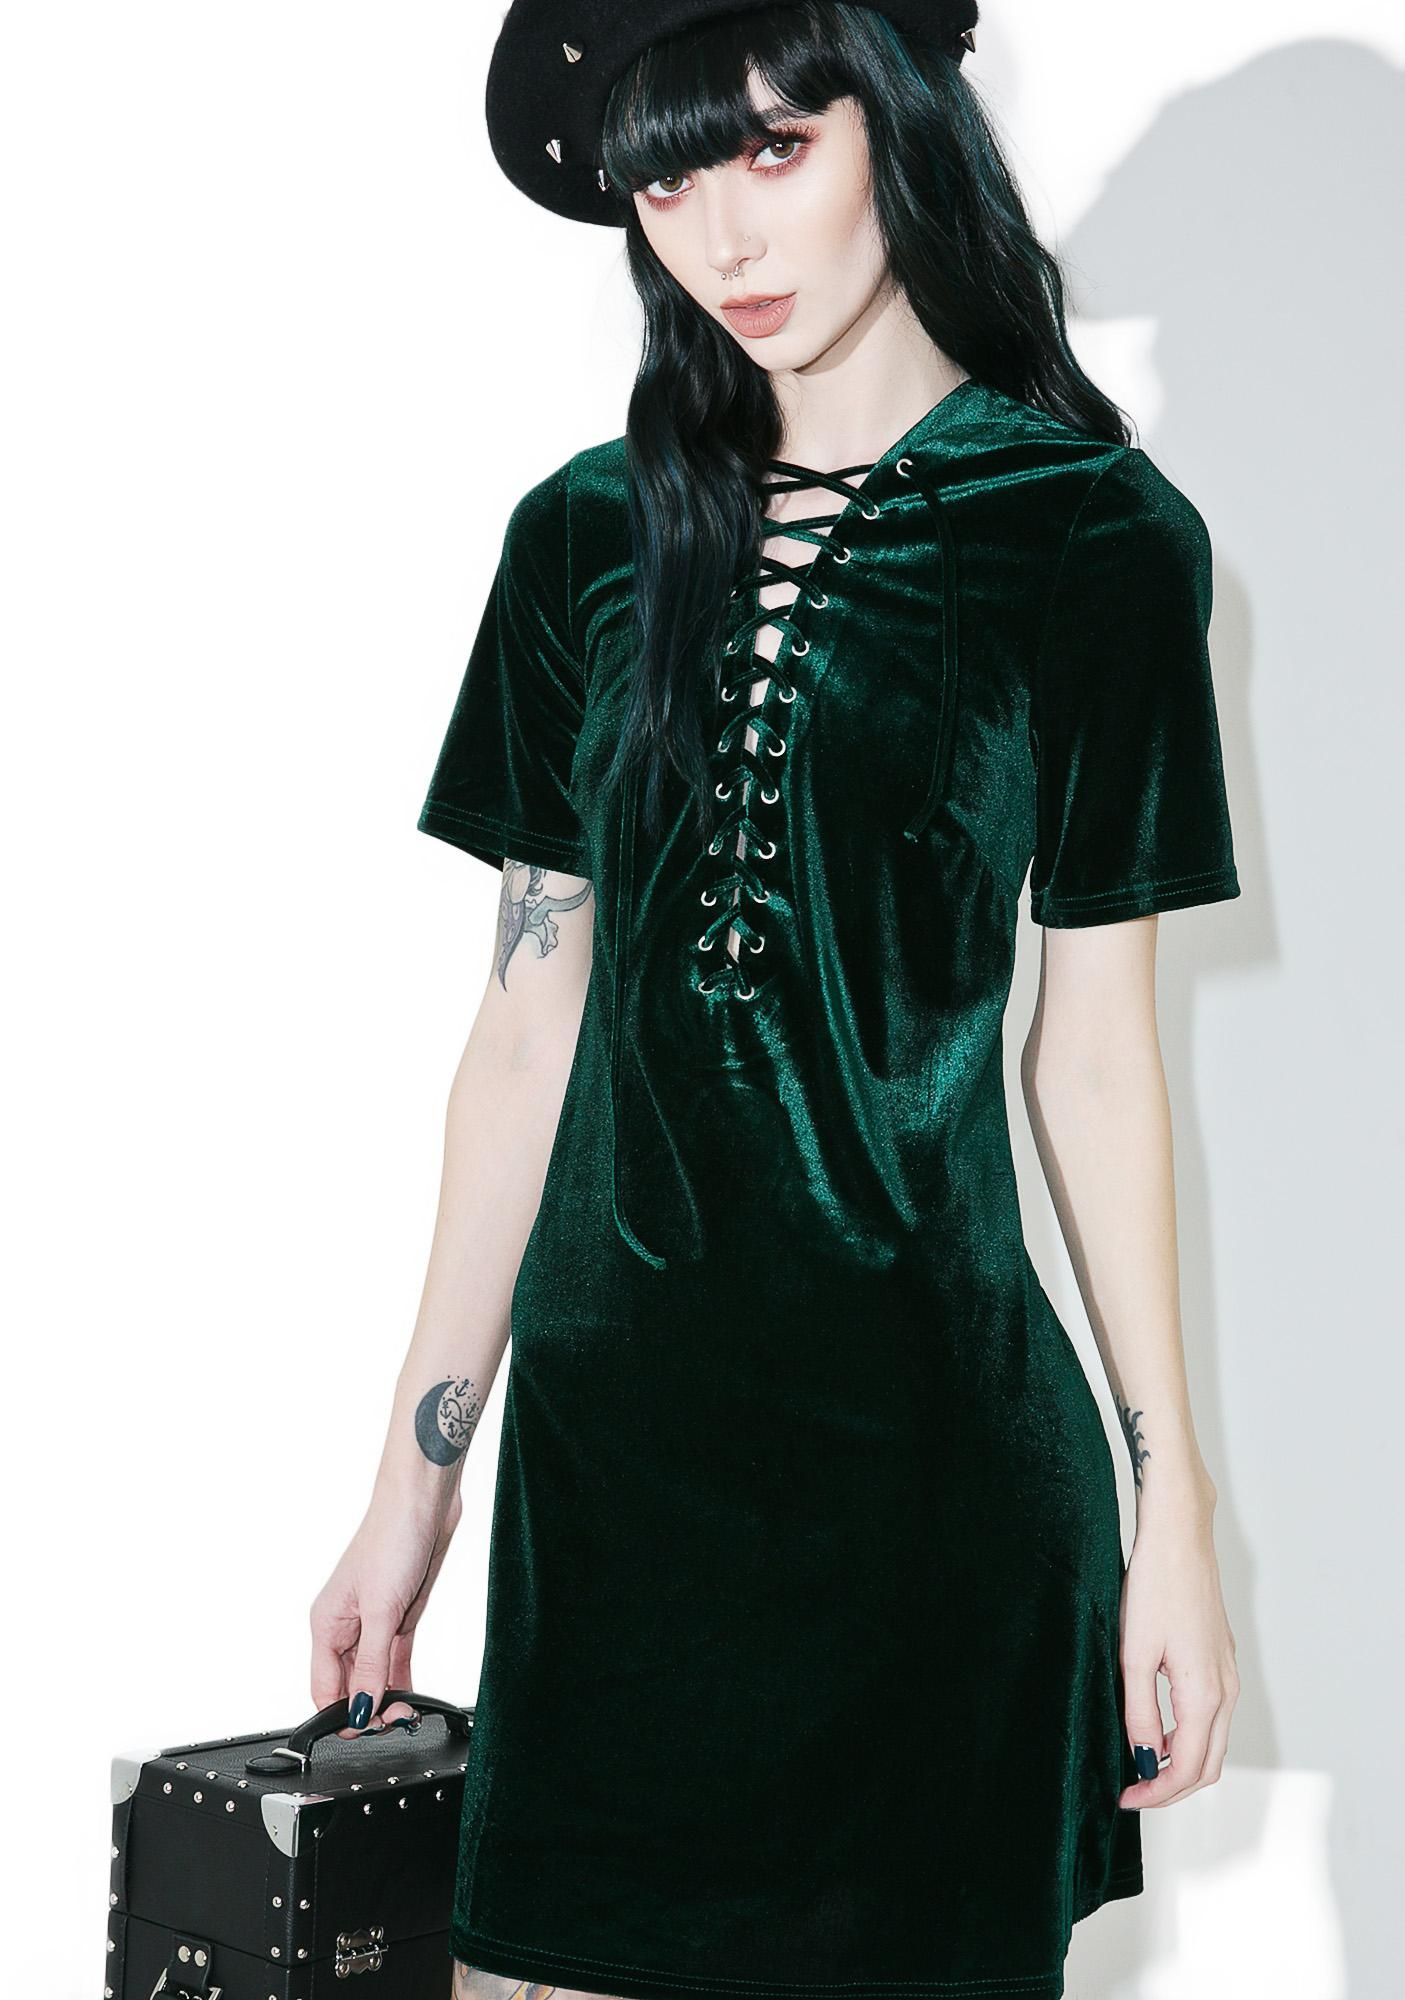 Green lace up dress  Glamorous Sage Velvet LaceUp Dress ya look perfectly peaceful